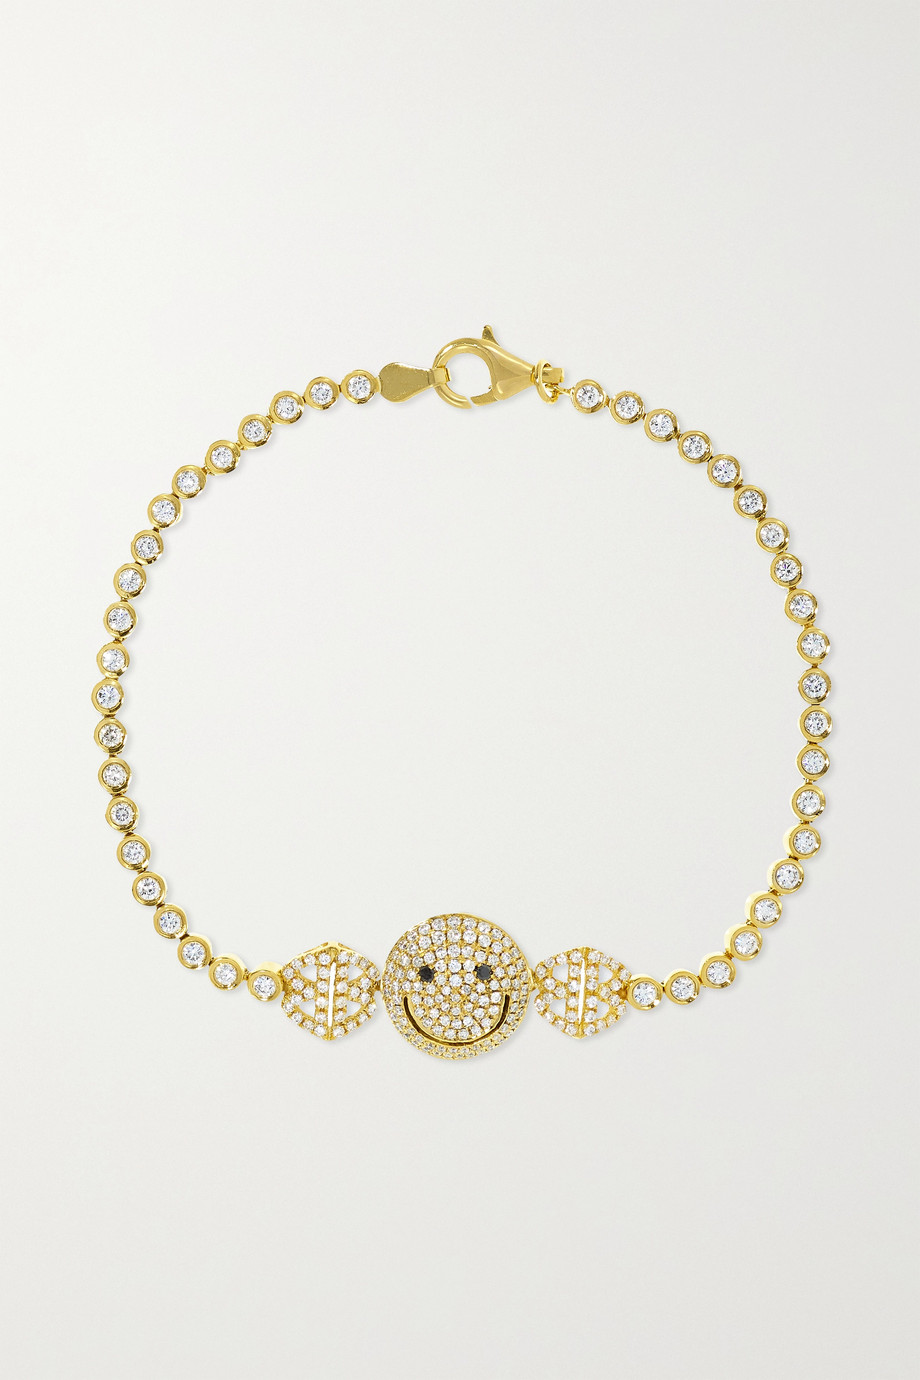 Lorraine Schwartz 2B Happy medium 18-karat gold diamond bracelet